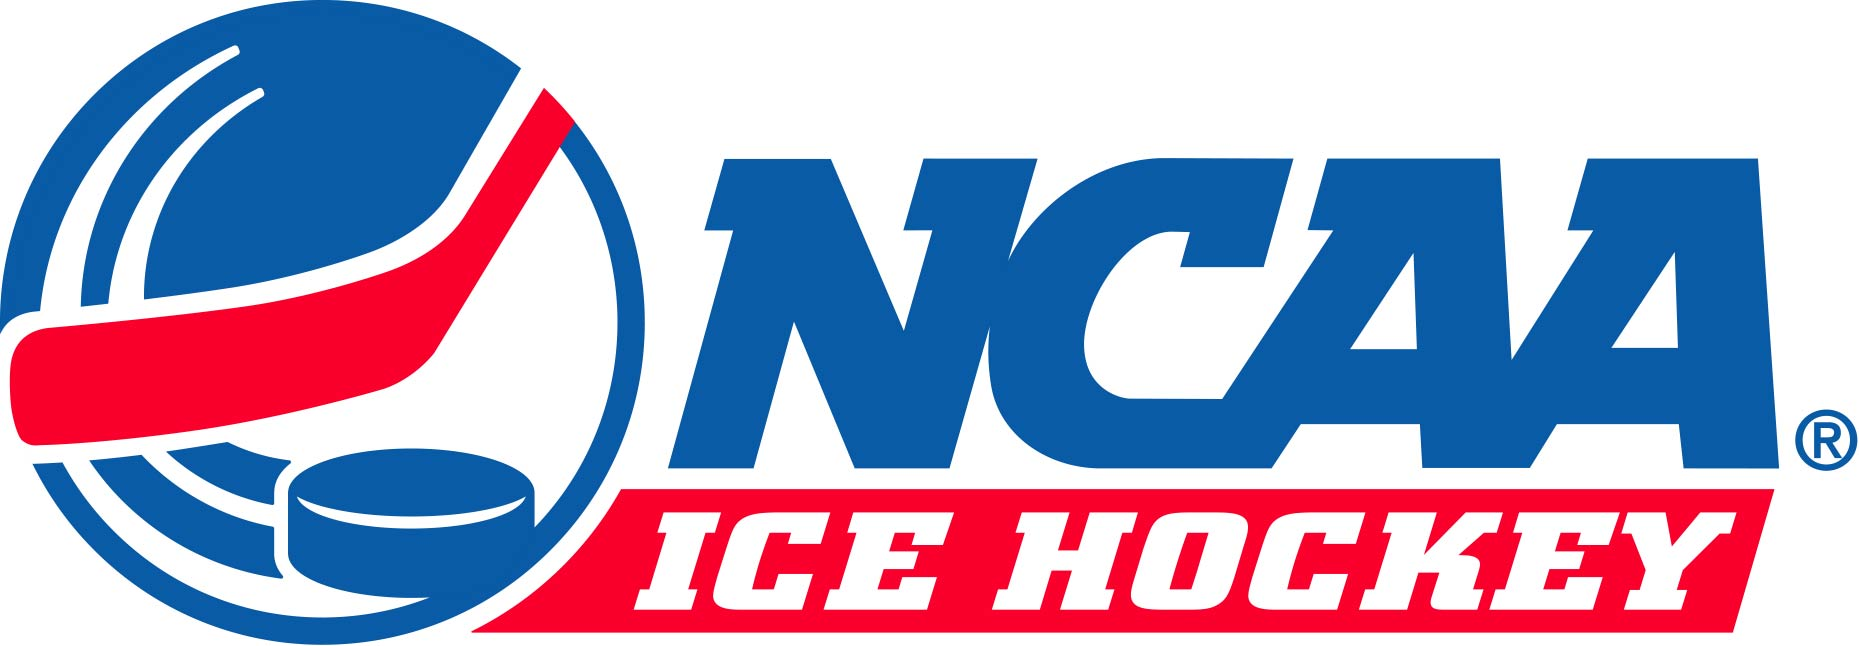 ncaahockey Catching the Torch: Dietz Excels